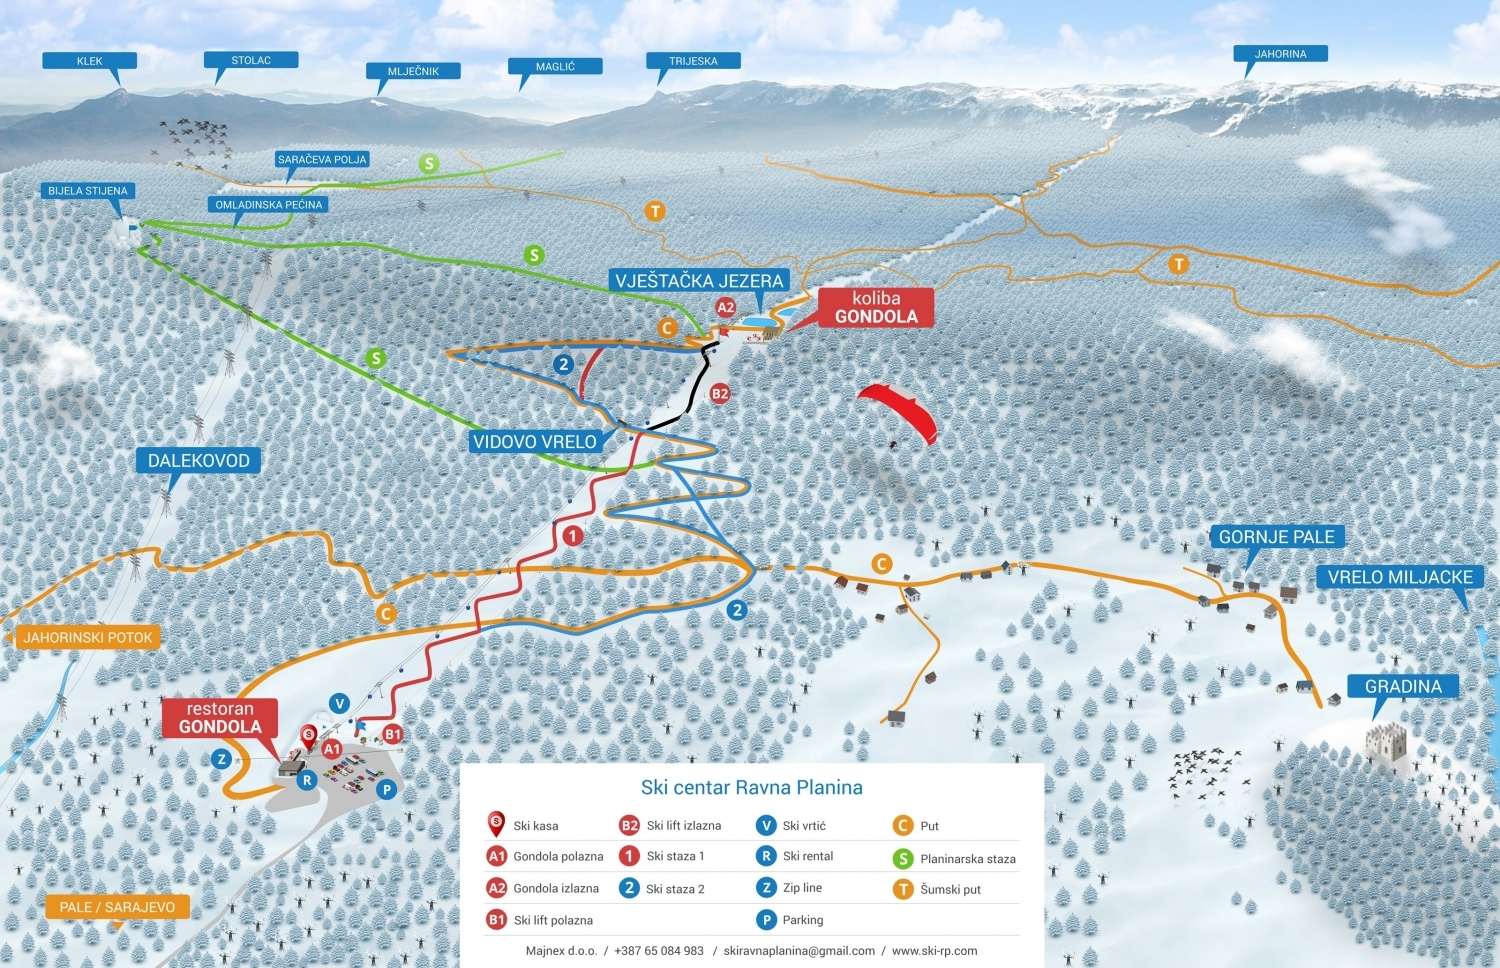 Ravna Planina Ski Resort Guide Location Map Ravna Planina Ski